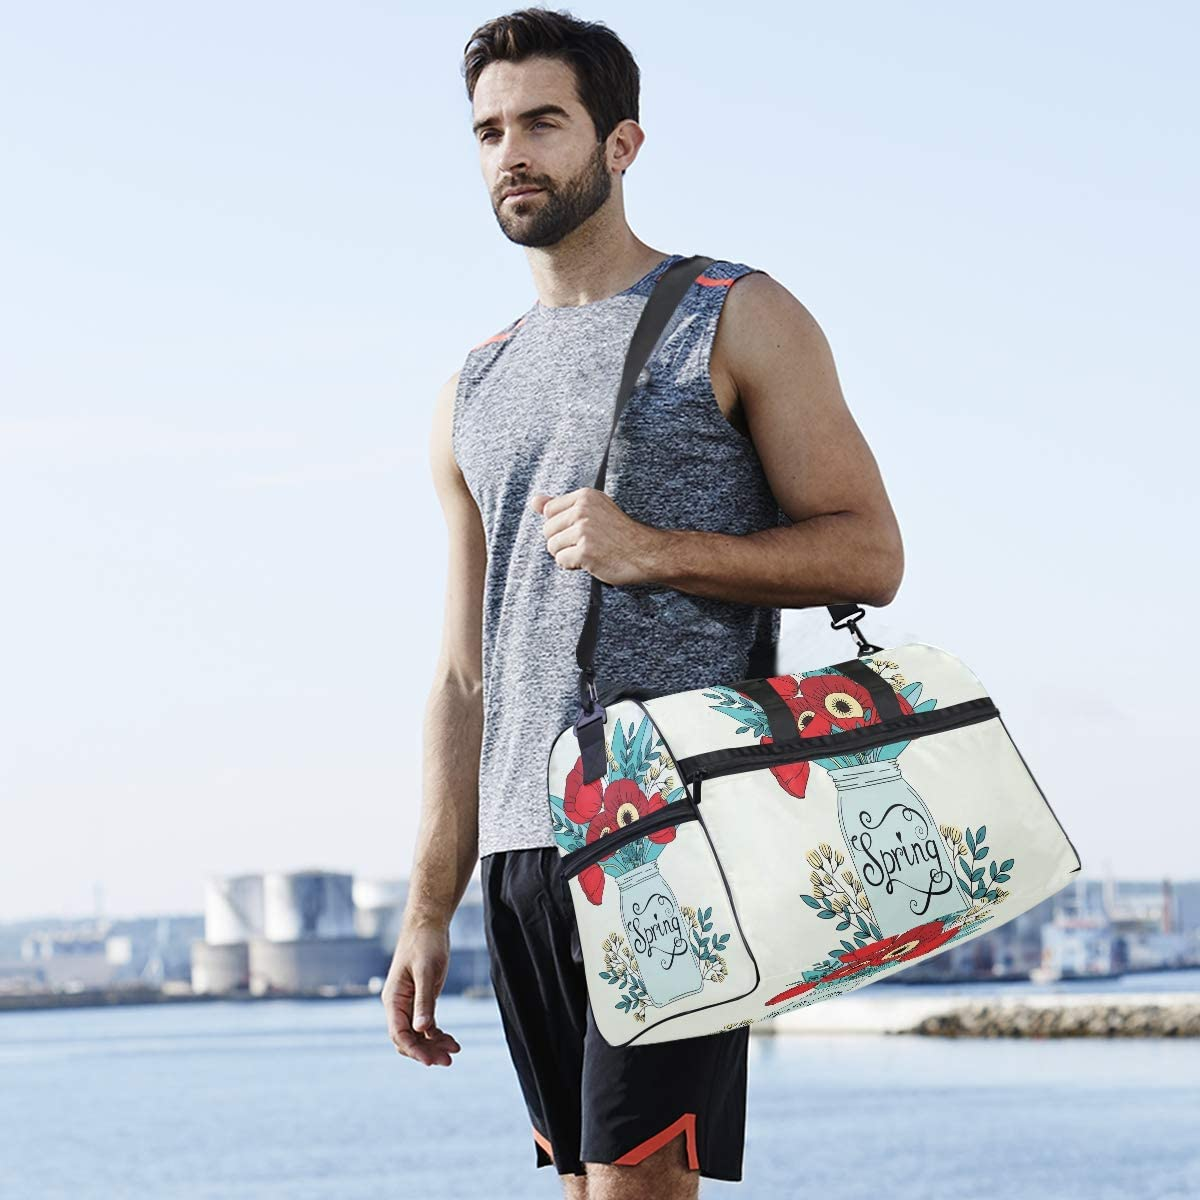 WIHVE Gym Bag Flower Poppy Floral Sports Travel Duffel Bag with Shoe Compartment